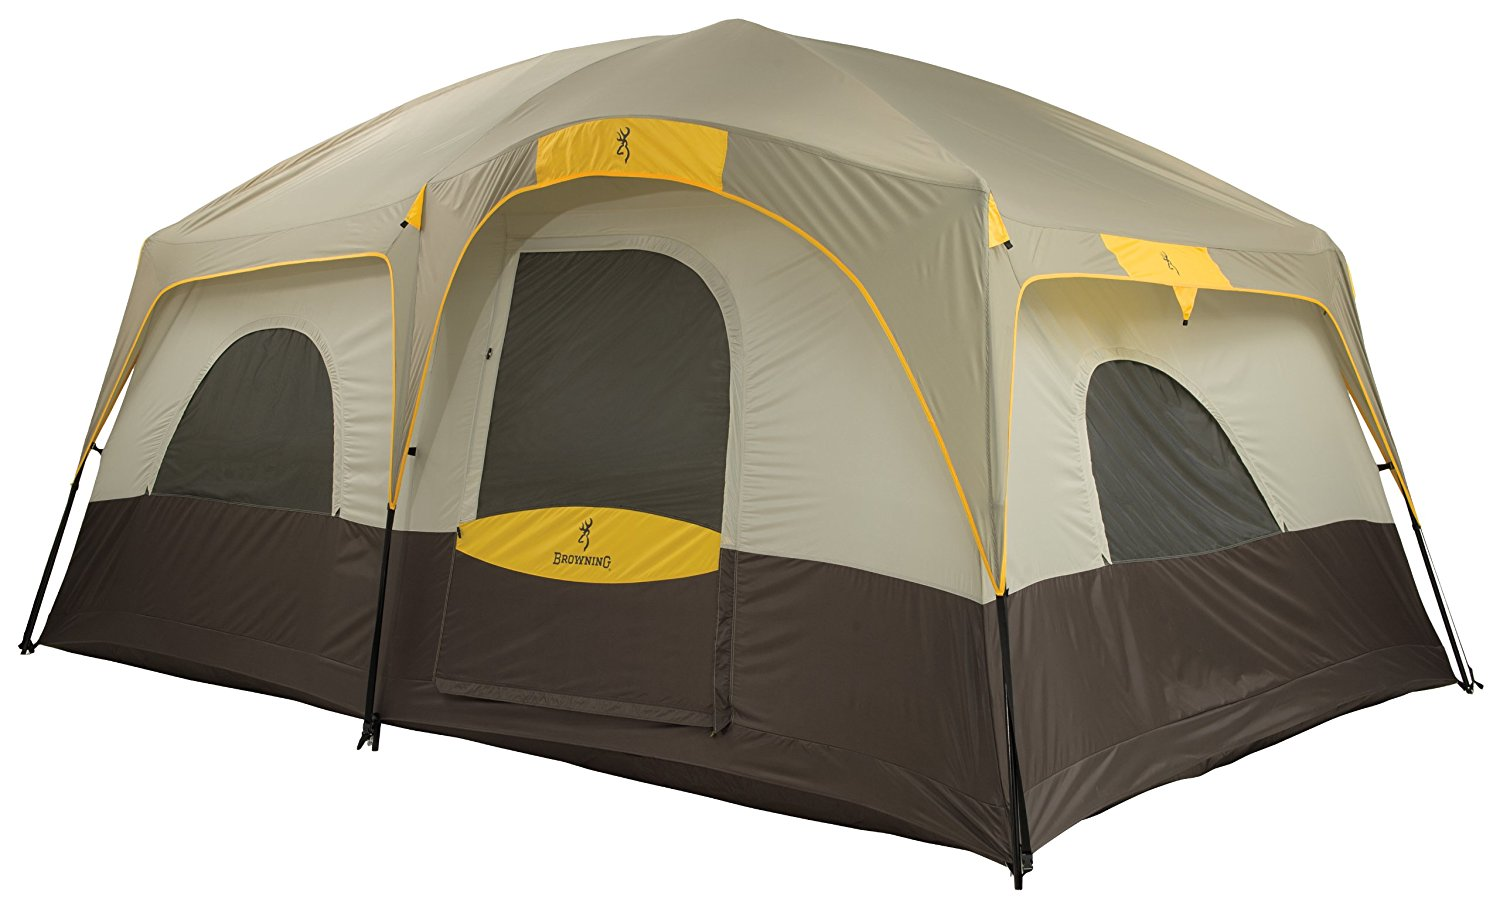 browning best hunting tent  sc 1 st  Good Game Hunting & Best Hunting Tent: Our Top 6 Recommendations - Good Game Hunting